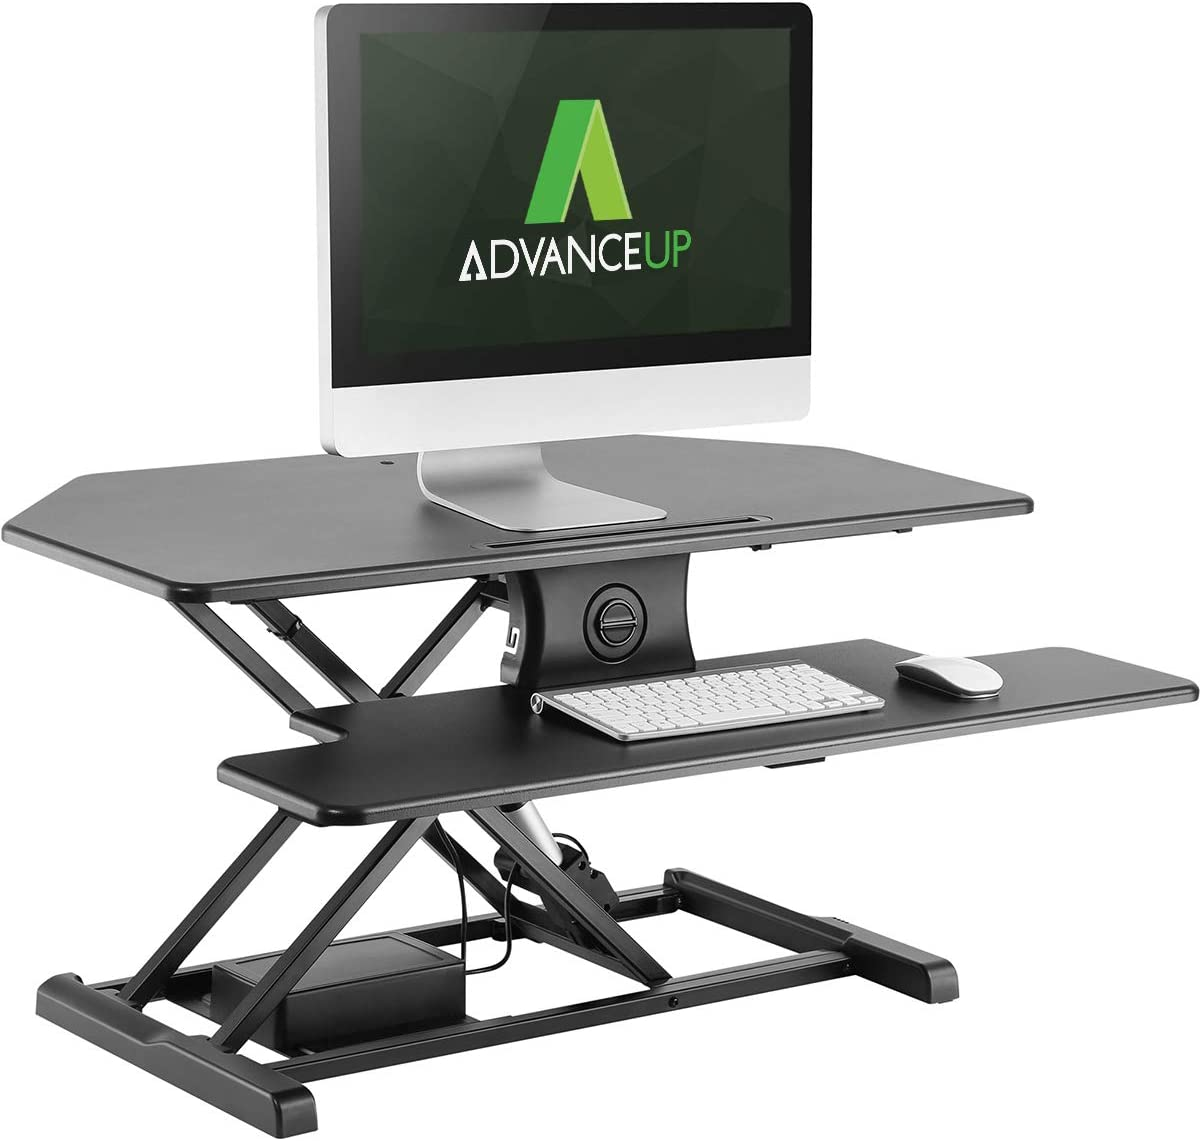 """AdvanceUp 37.4"""" 2-Tier Electric Ergonomic Corner Standing Desk Converter Riser, Motorized Height Adjustable Stand Up Workstation, 44lbs Capacity   Great for Offices & Cubicles with Dual Monitors"""